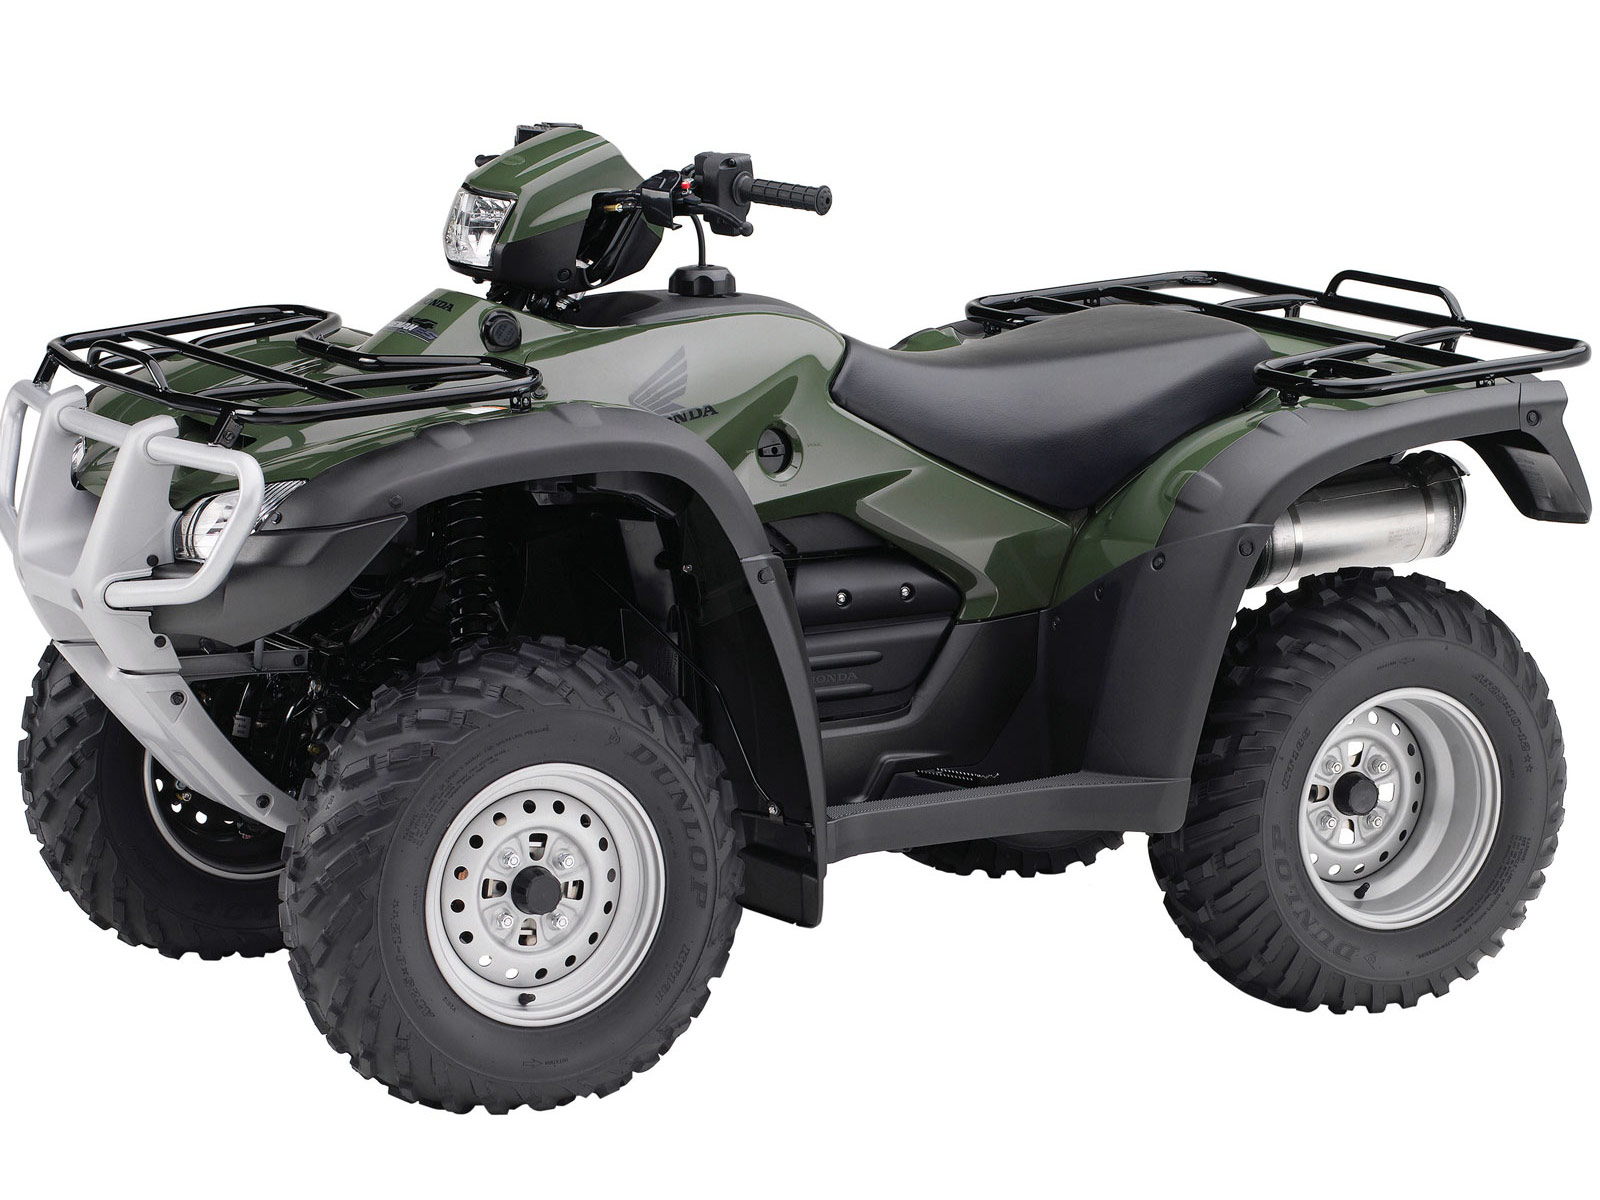 2011 honda fourtrax foreman 4x4 es with power steering trx500fpe. Black Bedroom Furniture Sets. Home Design Ideas